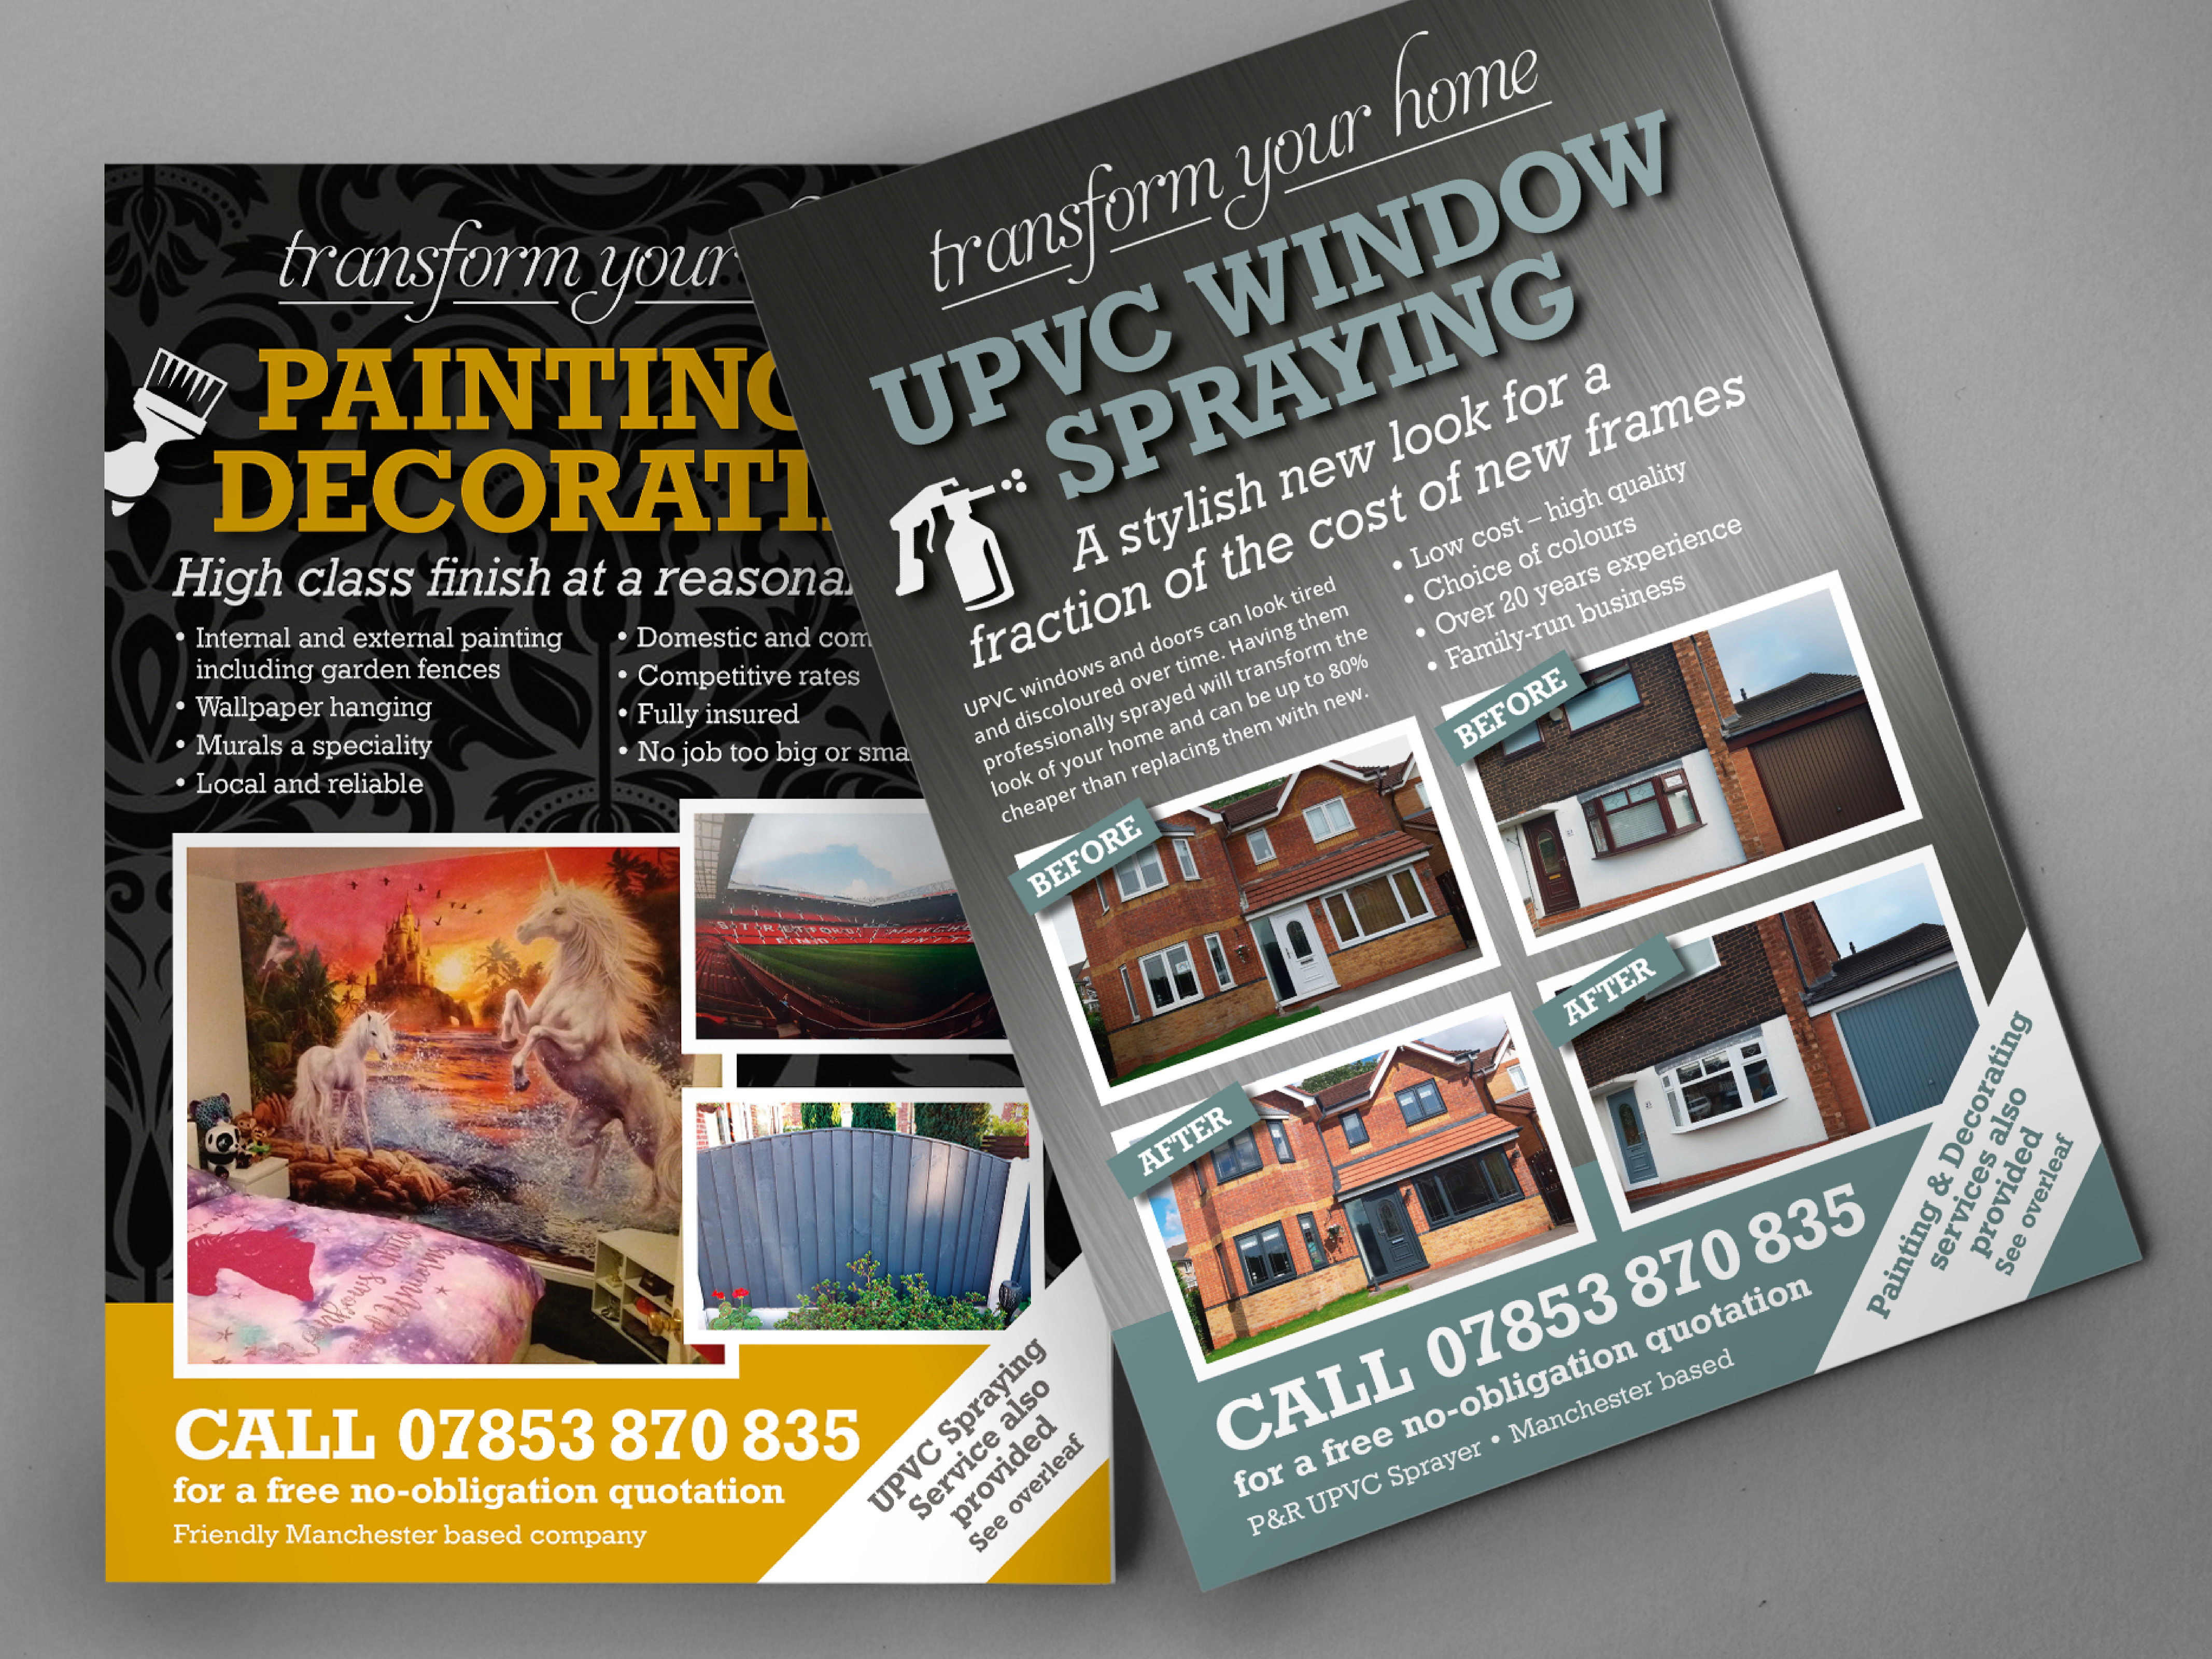 Design and printing of a leaflet promoting a UPVC spraying service in Dukinfield, Tameside.